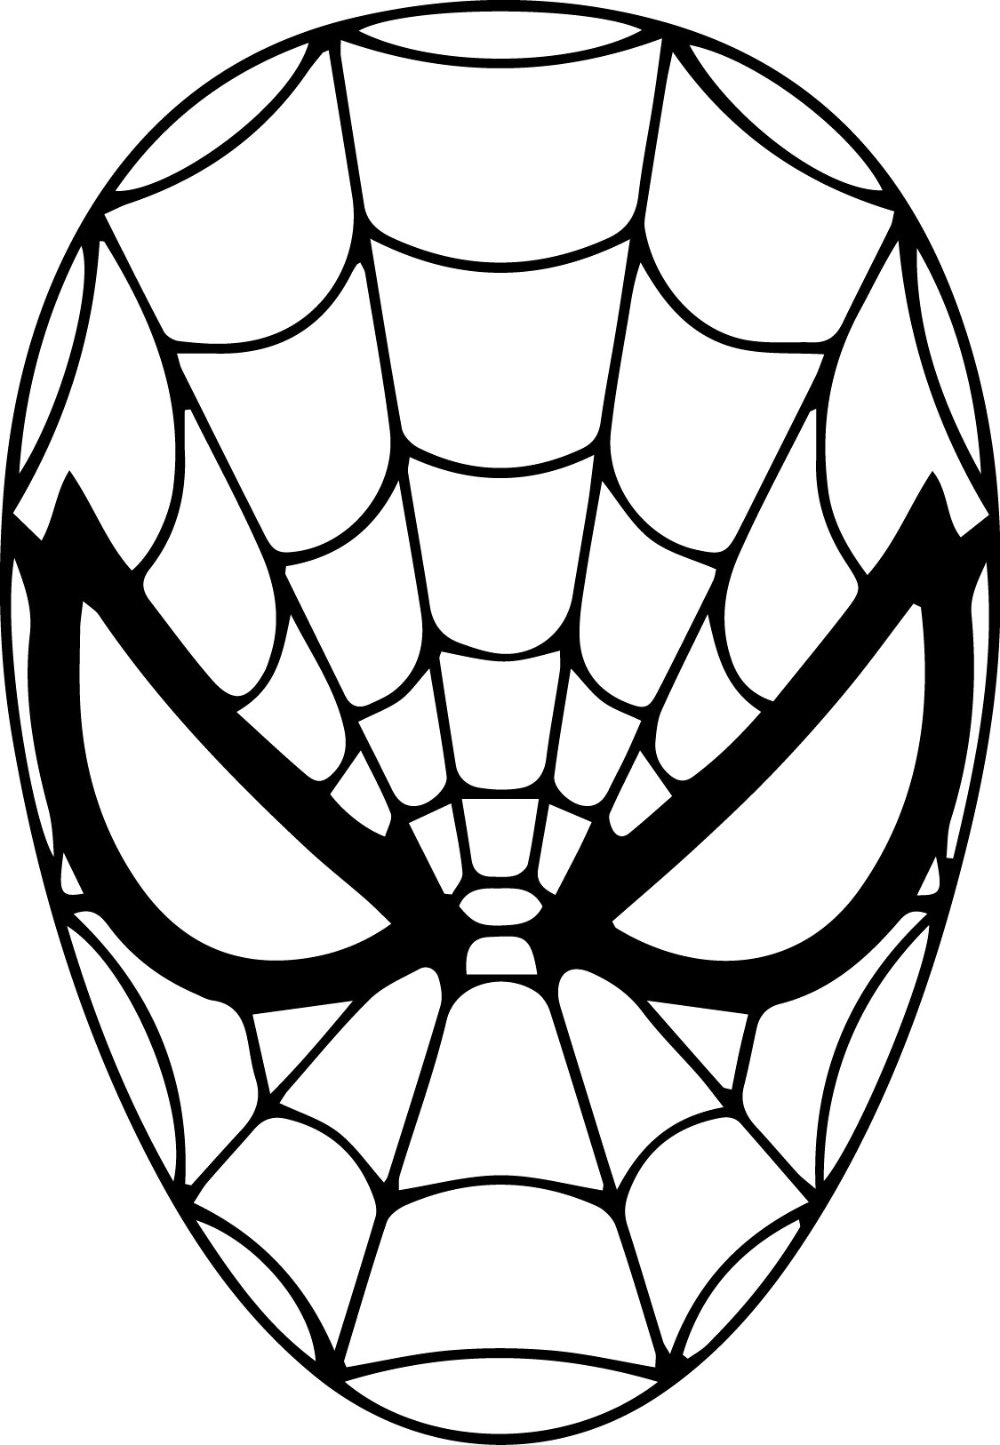 Spiderman Face Drawing Mask Coloring Page - Spiderman Drawing